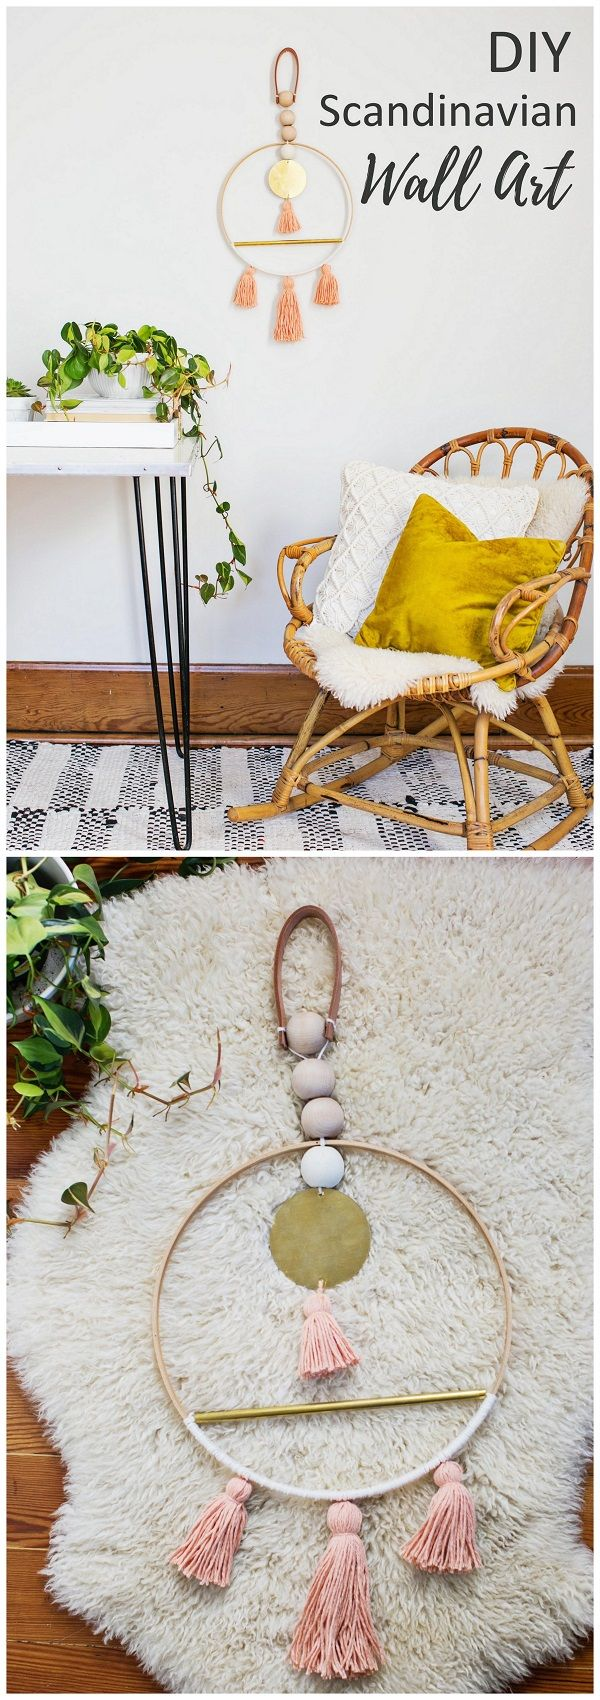 15 Most Gorgeous Scandinavian DIY Home Decor Projects | Craft, Decor ...